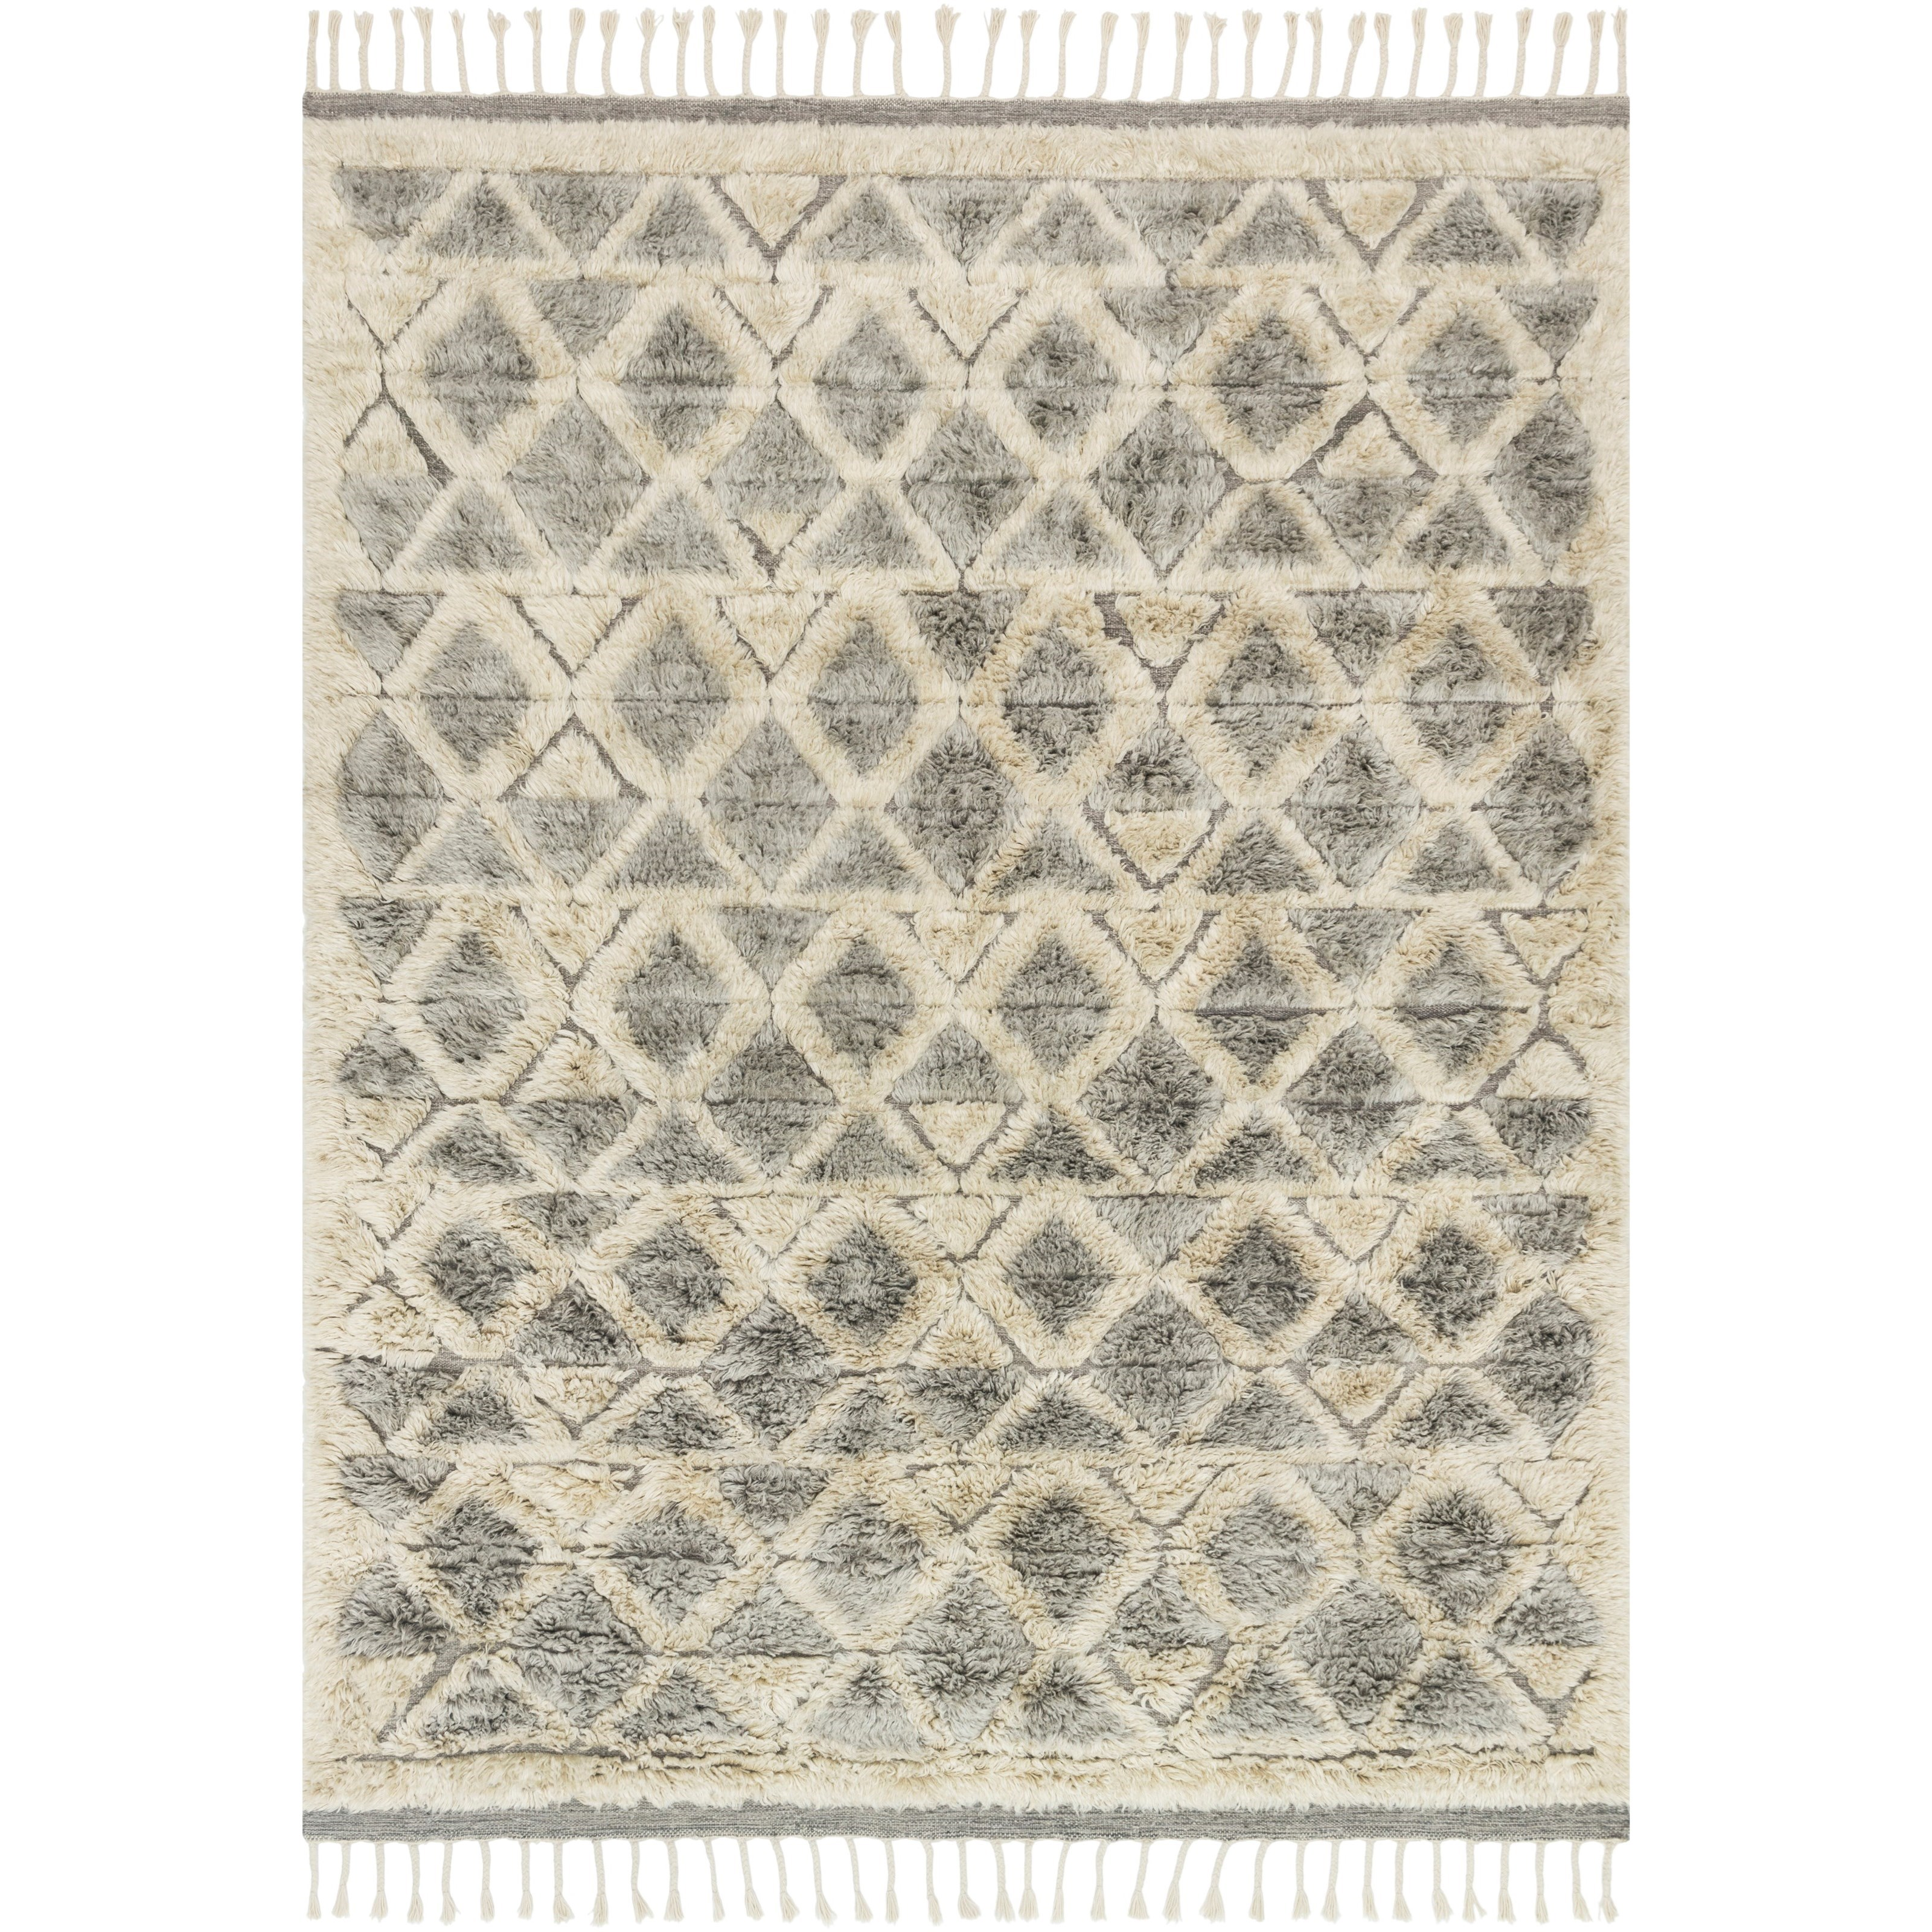 """Hygge 9'6"""" x 13'6"""" Smoke / Taupe Rug by Loloi Rugs at Virginia Furniture Market"""